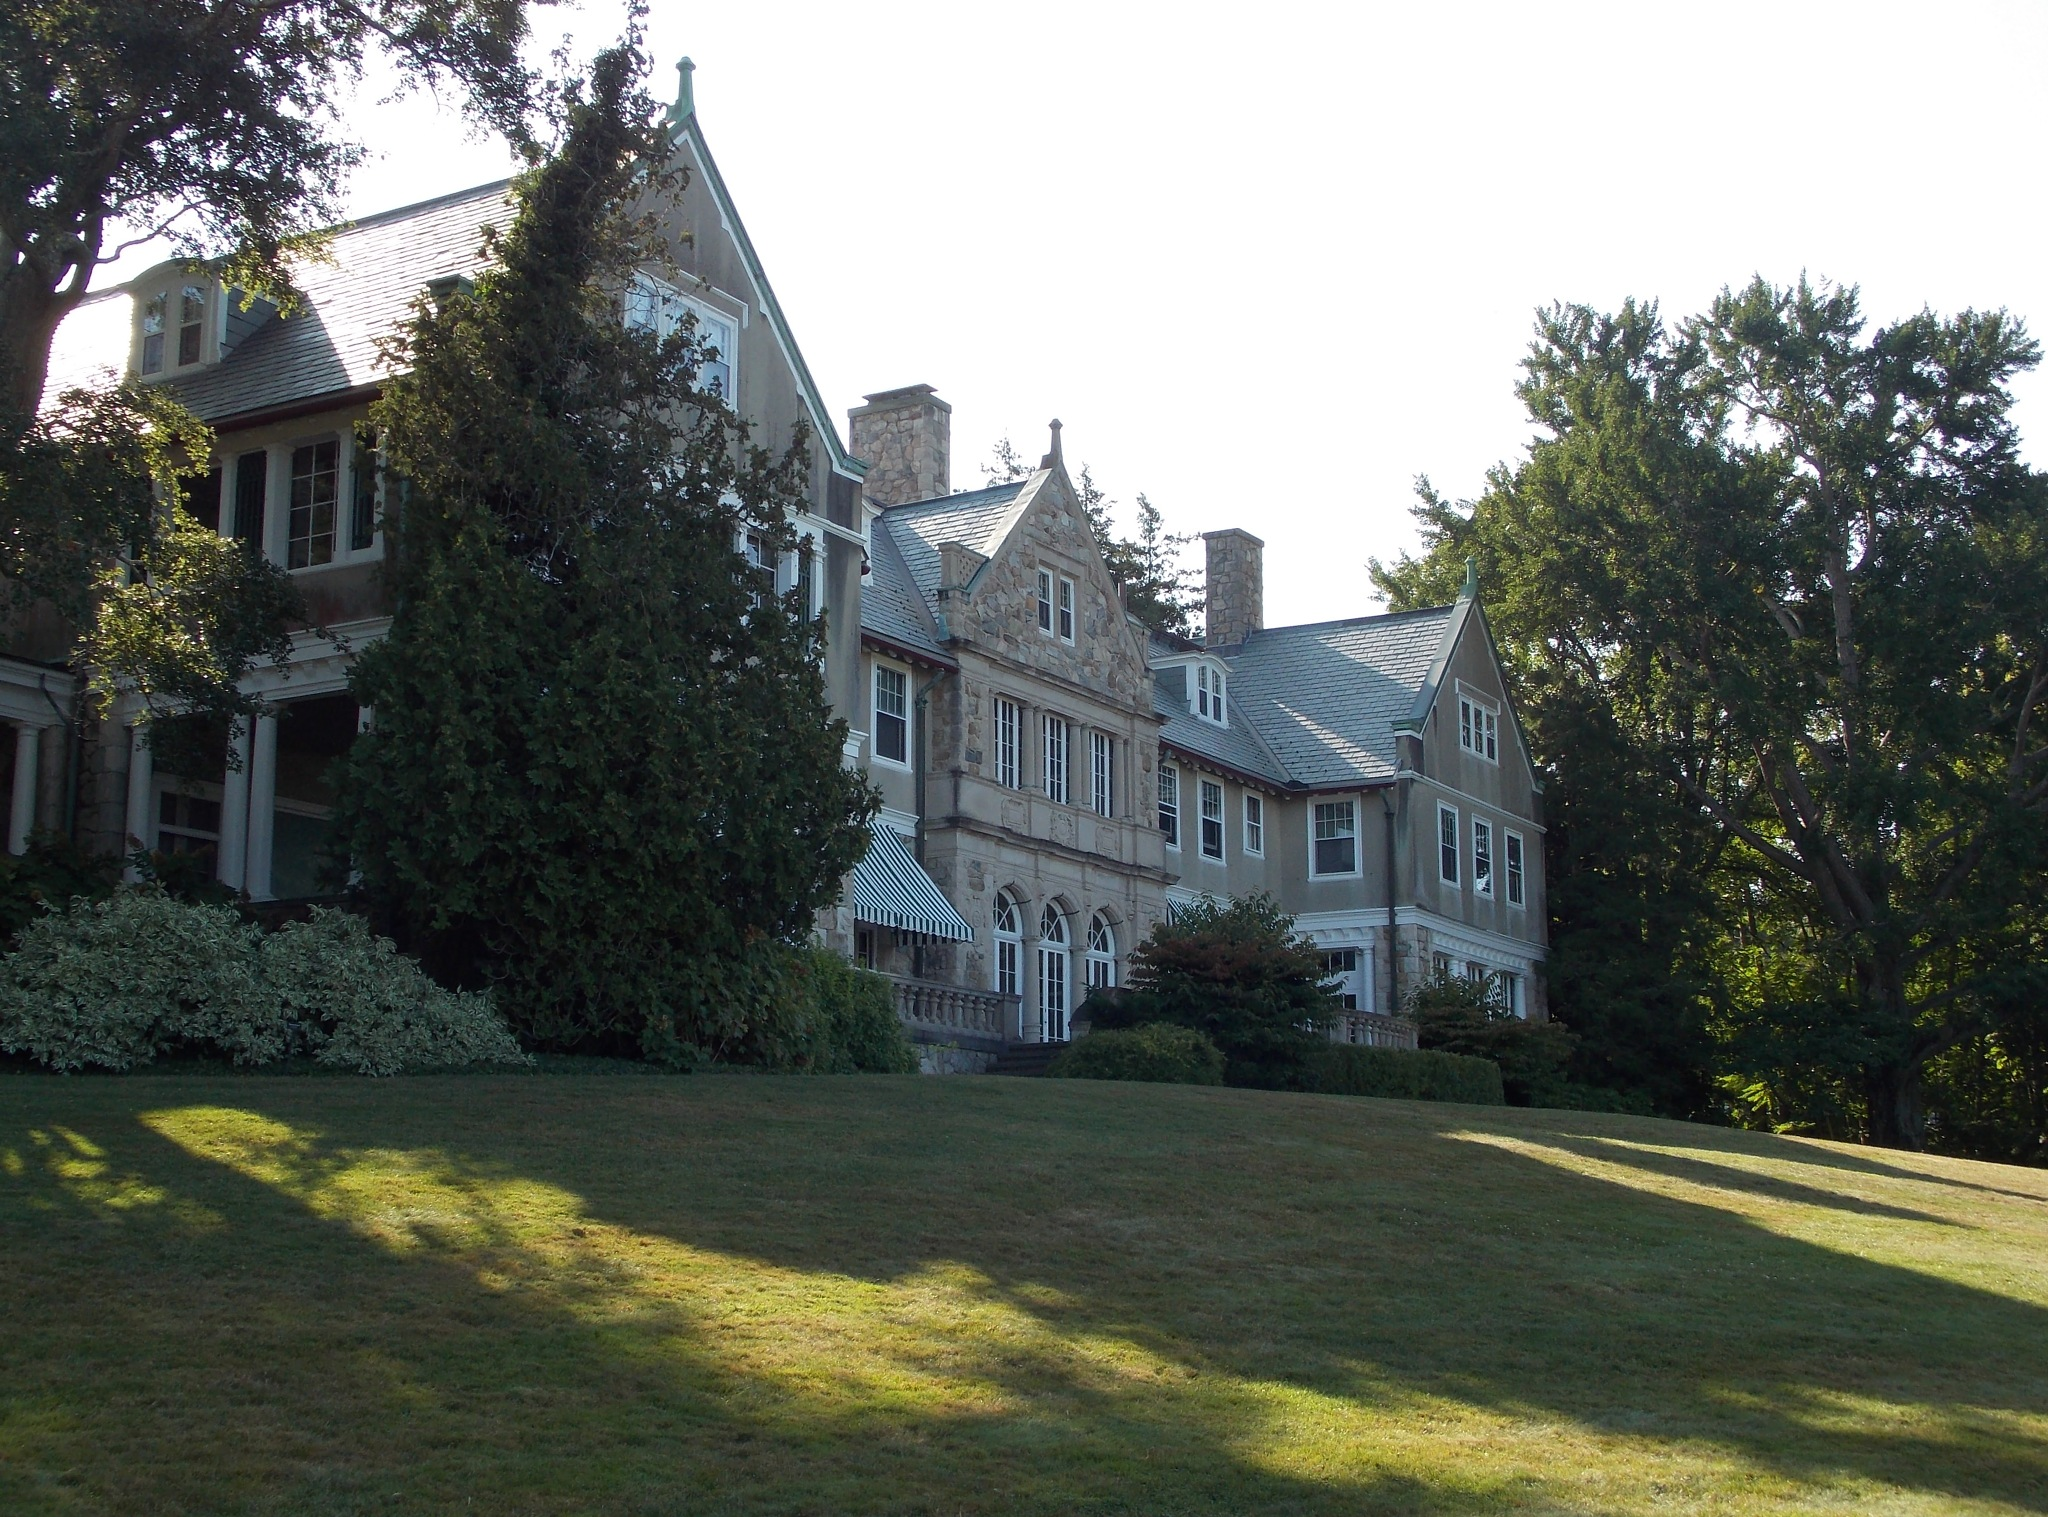 Blithewold Mansion by Victoria L. Smith